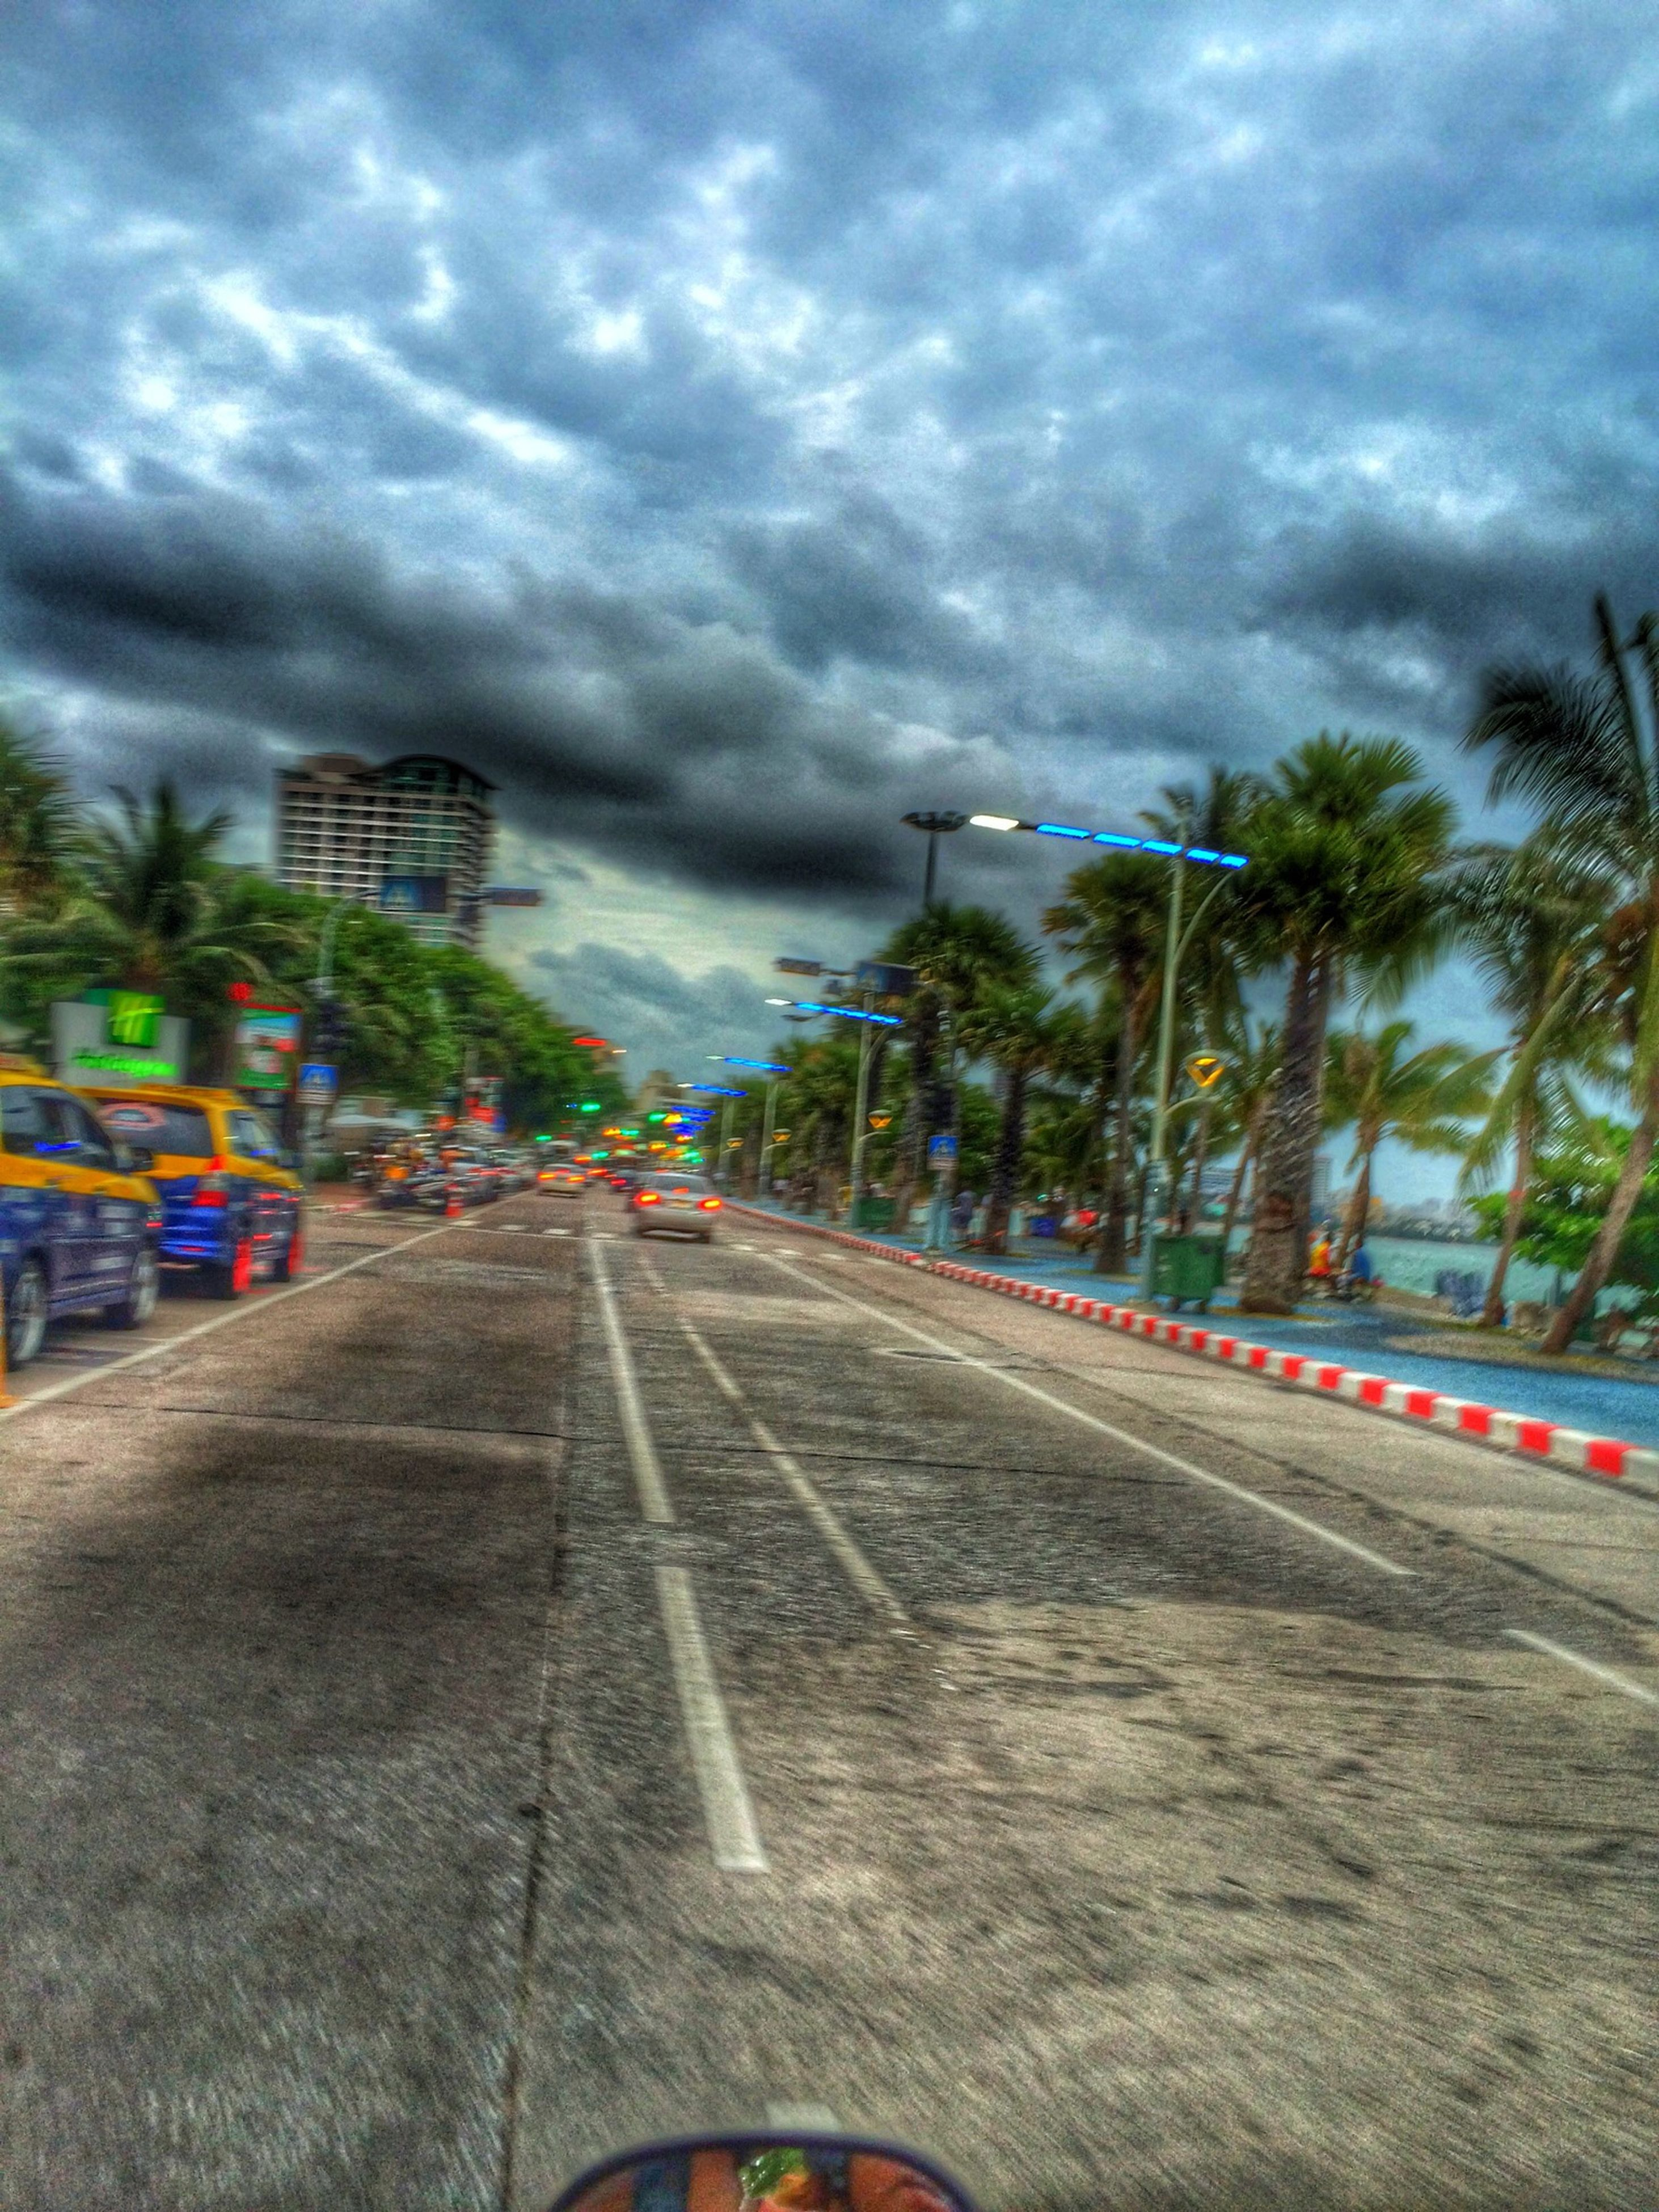 cloud - sky, sky, cloudy, transportation, the way forward, road, cloud, weather, land vehicle, street, storm cloud, road marking, overcast, car, diminishing perspective, tree, mode of transport, dramatic sky, vanishing point, dusk